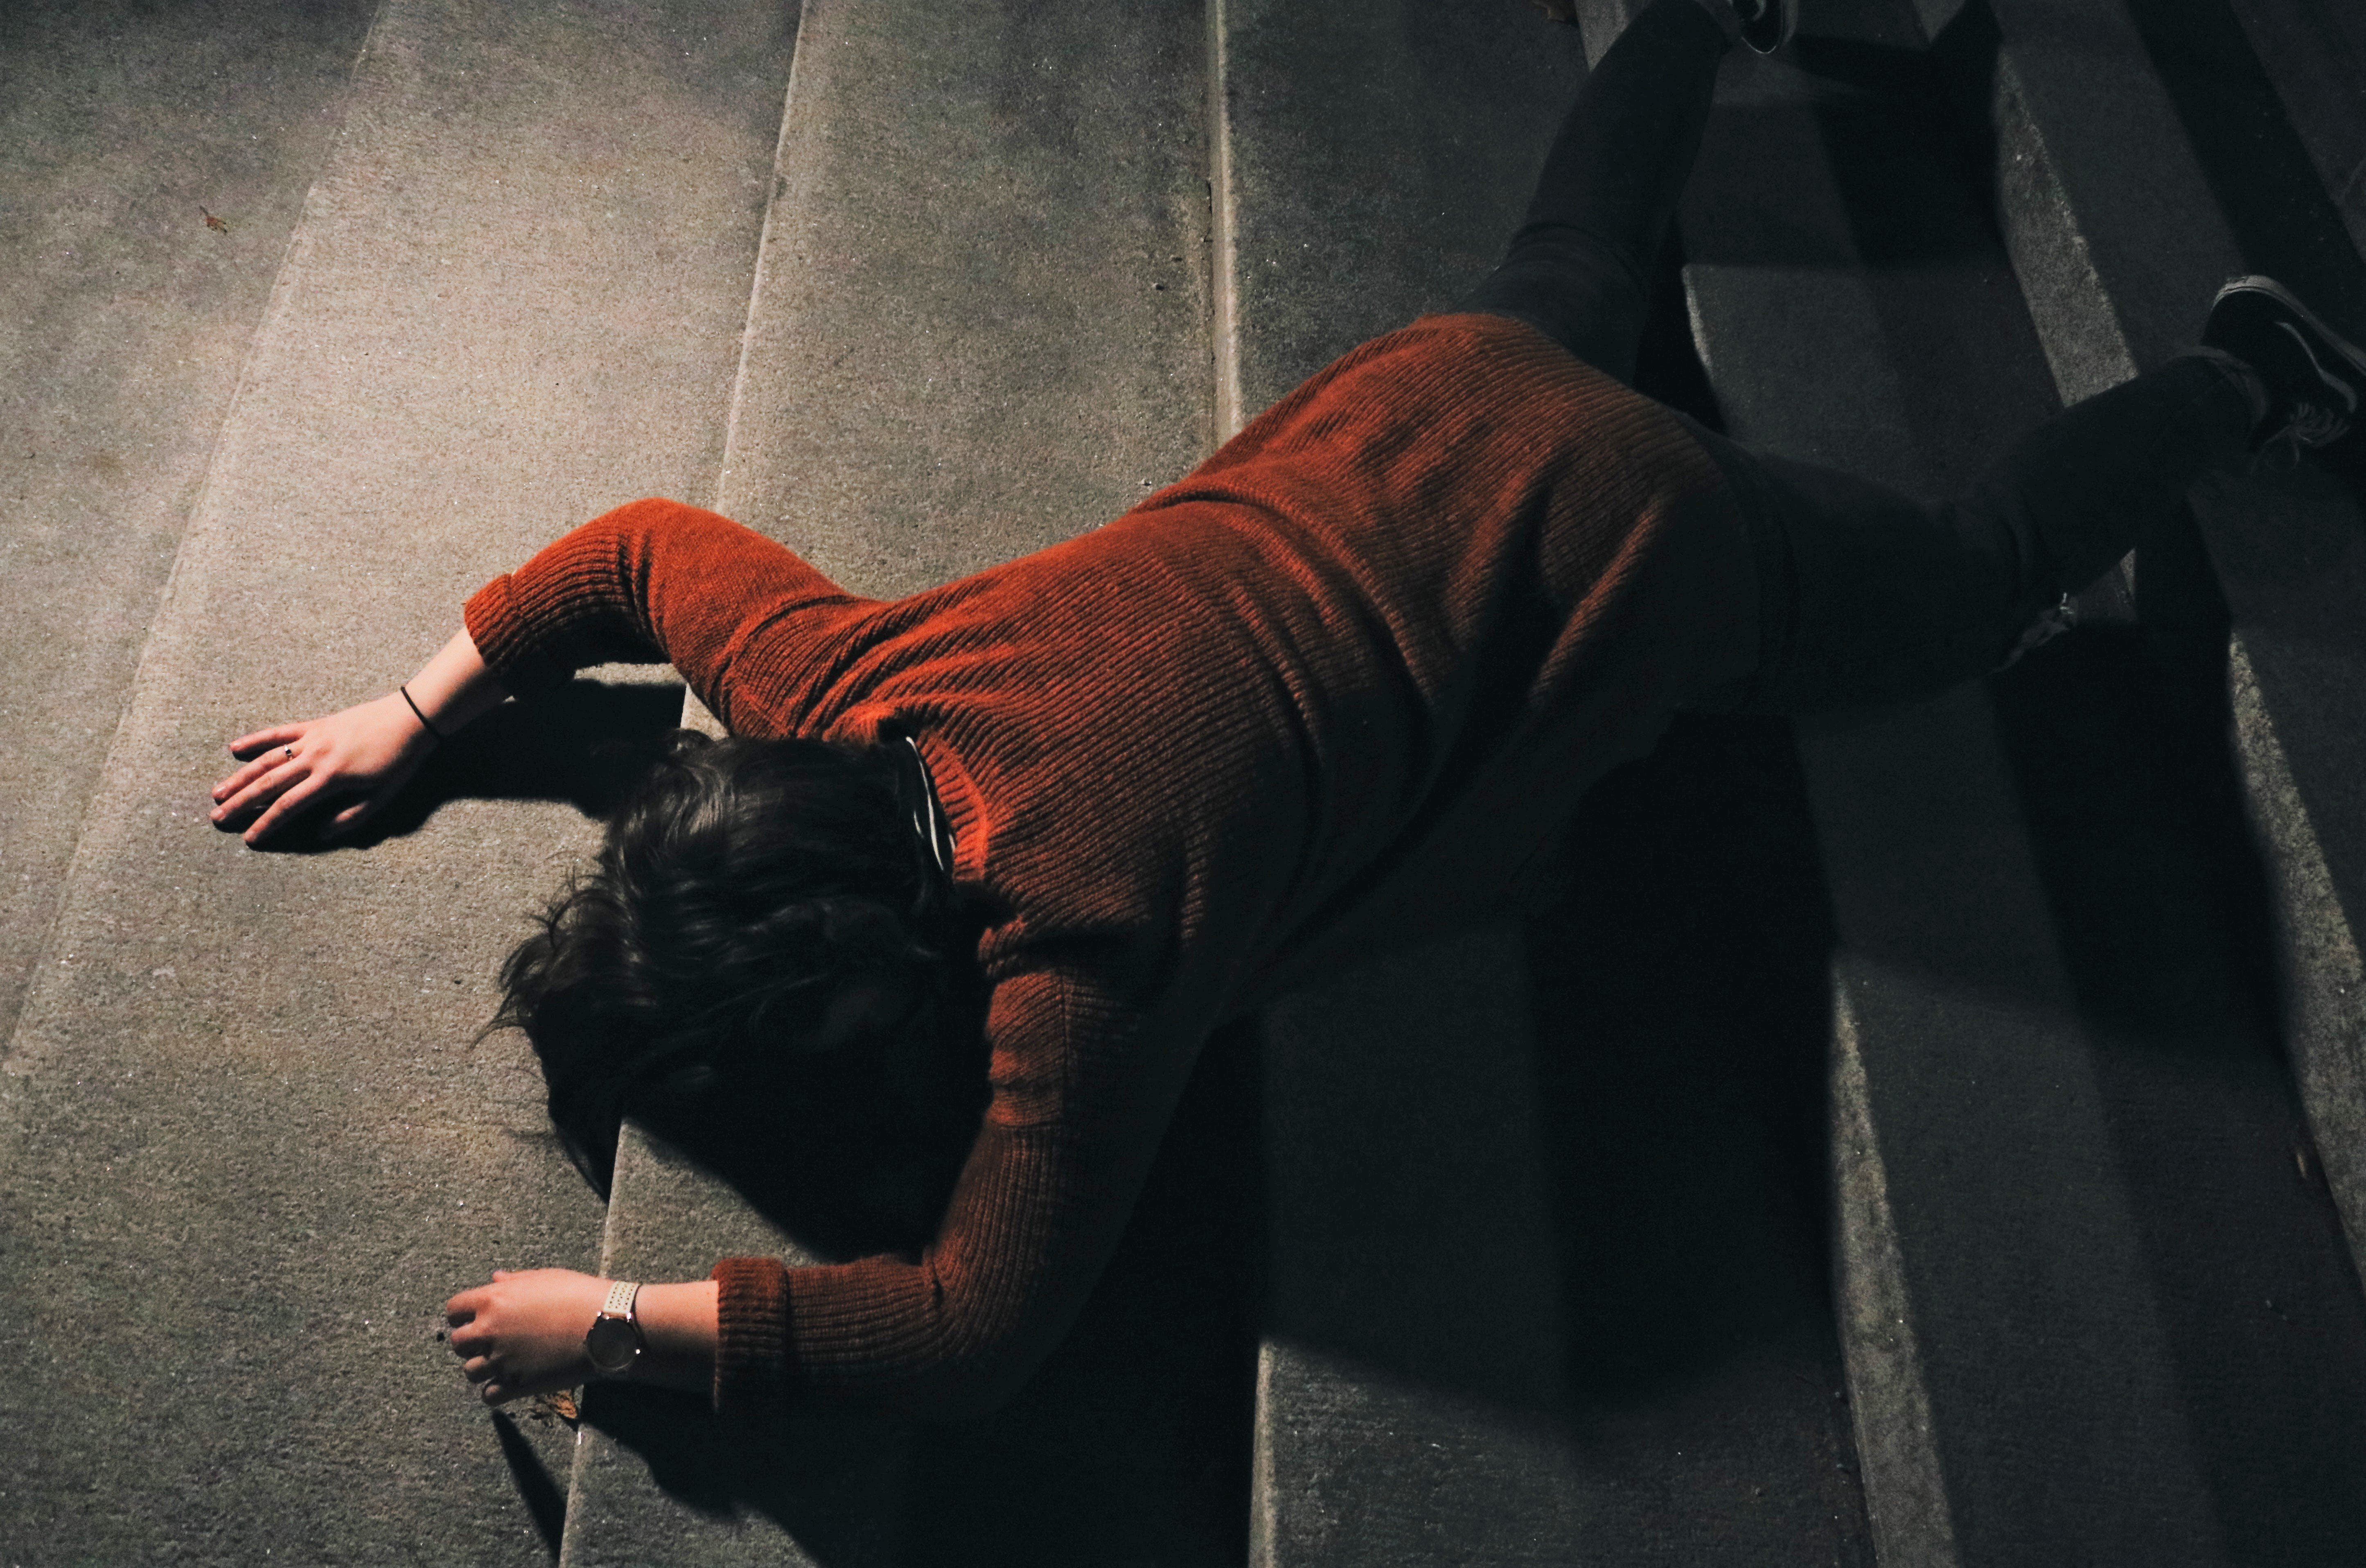 A woman fallen over on the floor face down.